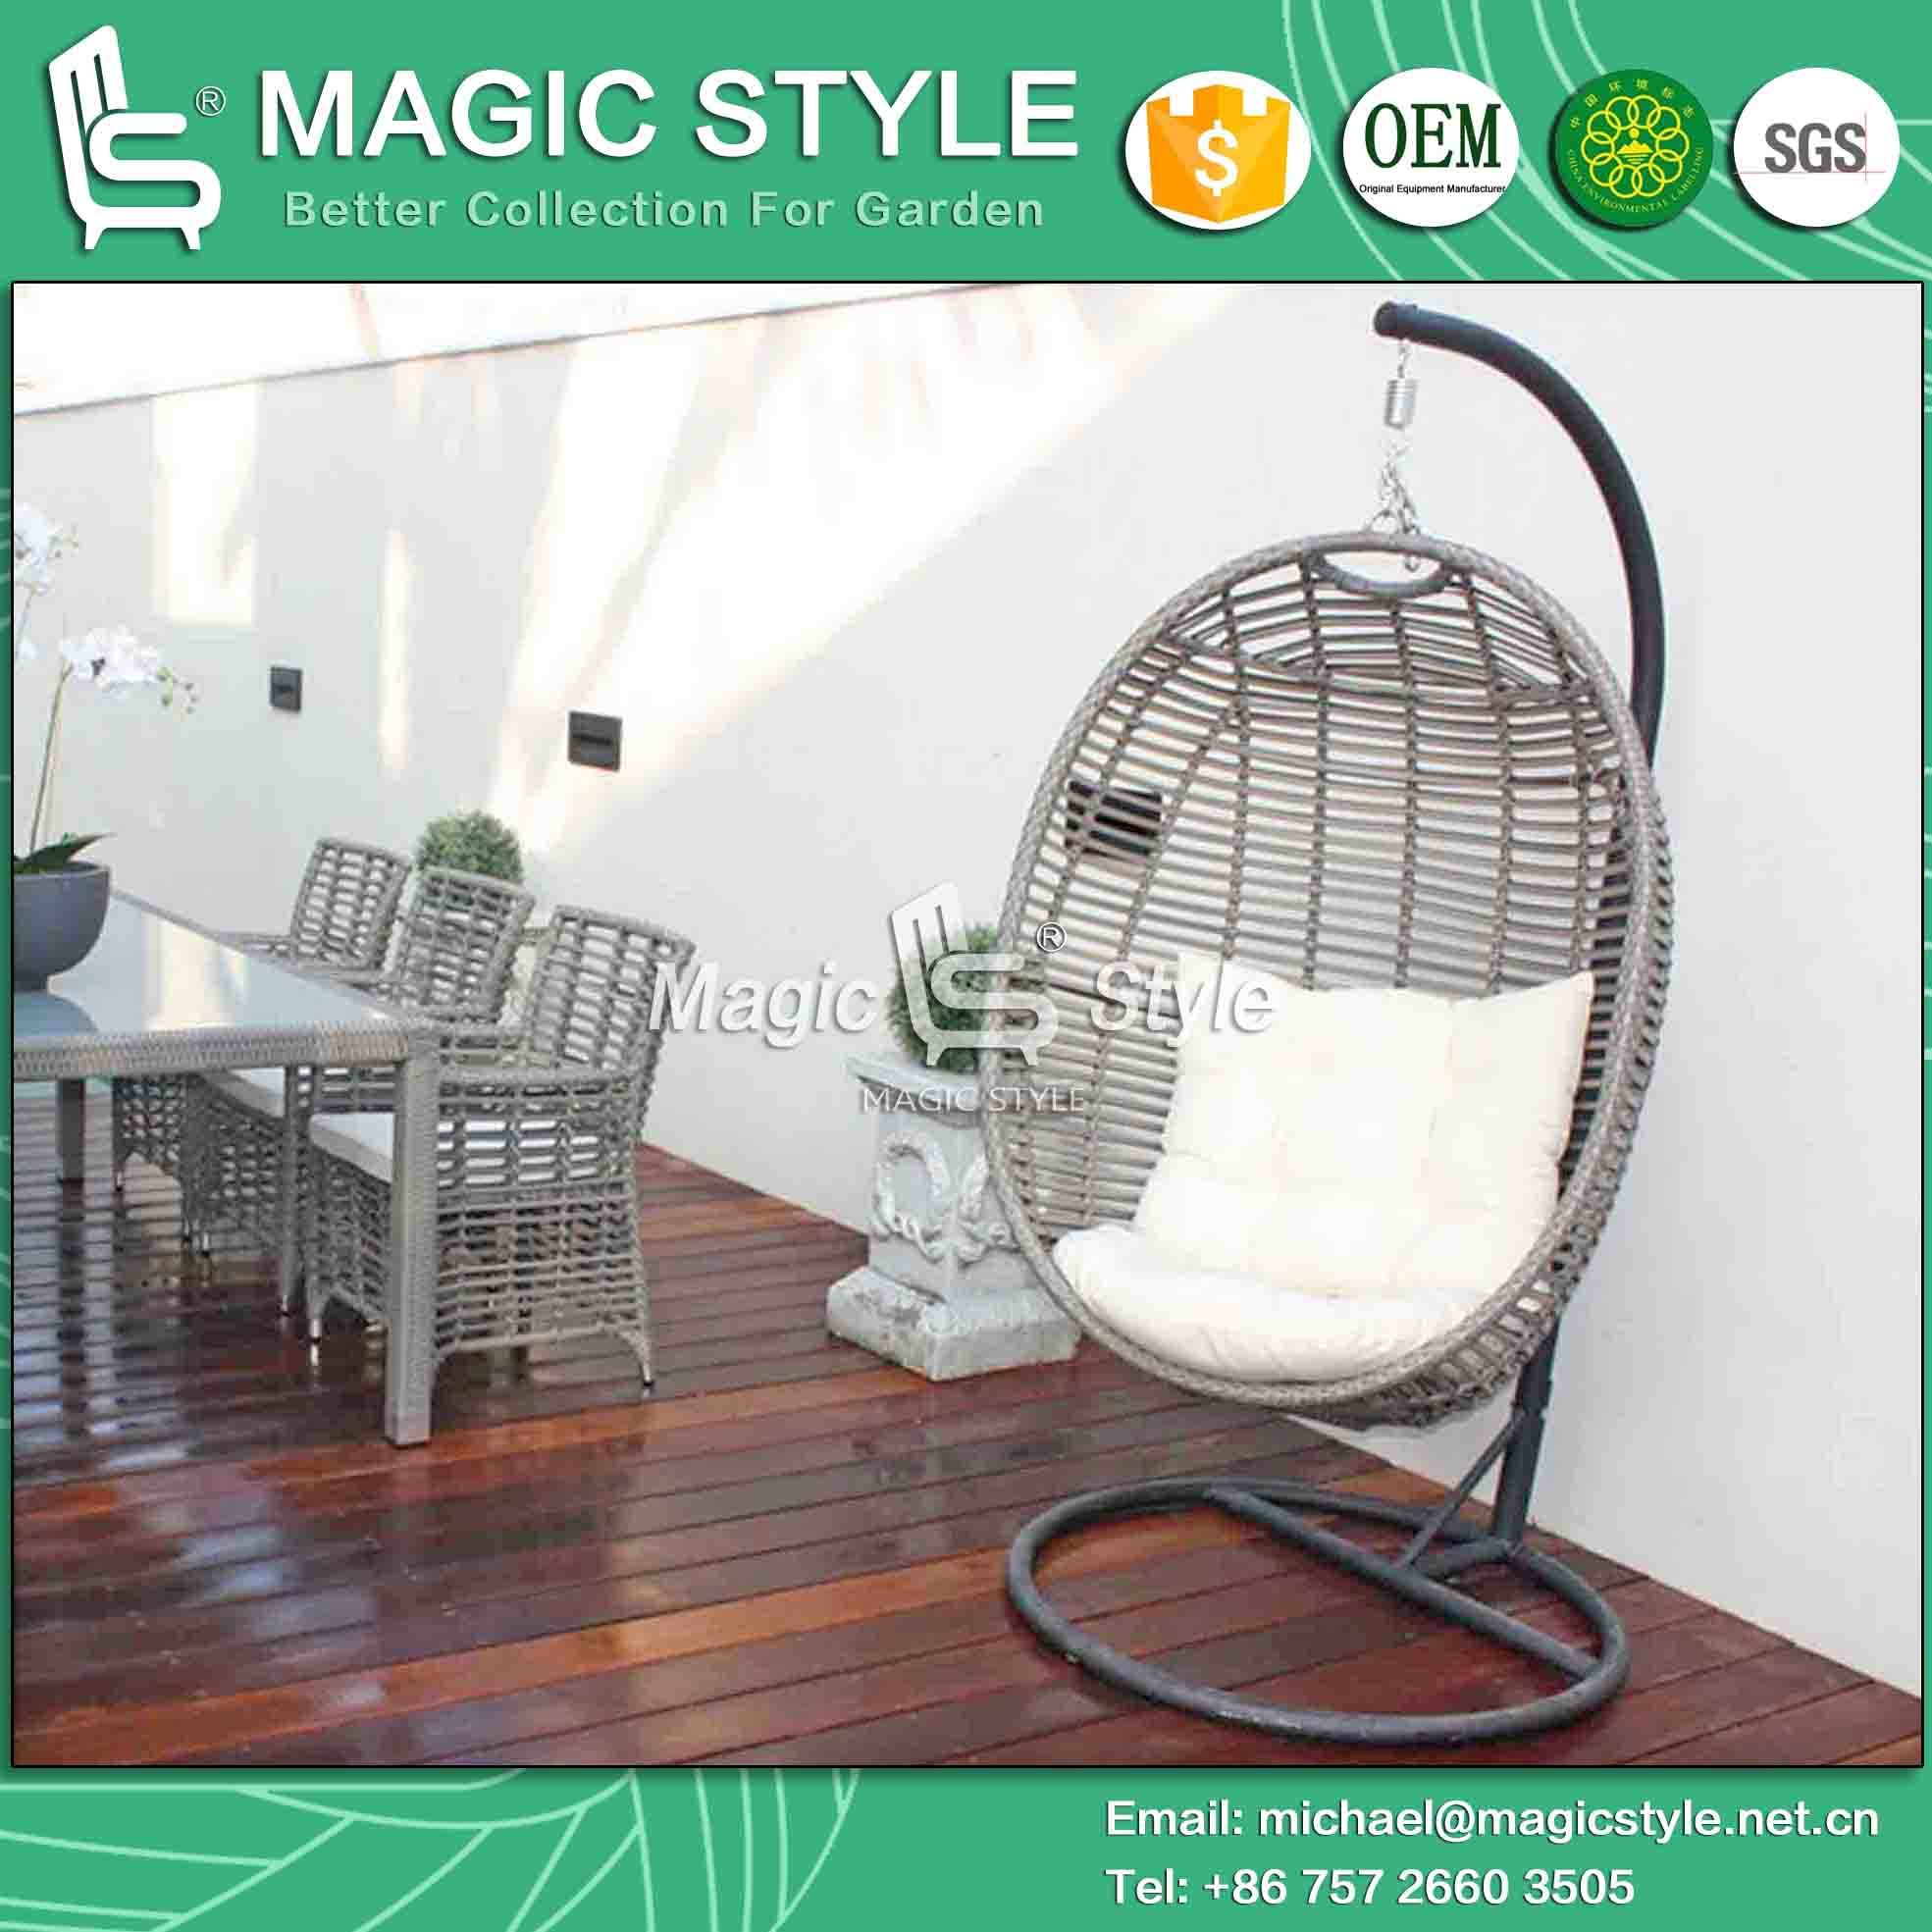 Wicker Swing Rattan Hammock Garden Cradle Leisure Chair (Magic Style) Foshan